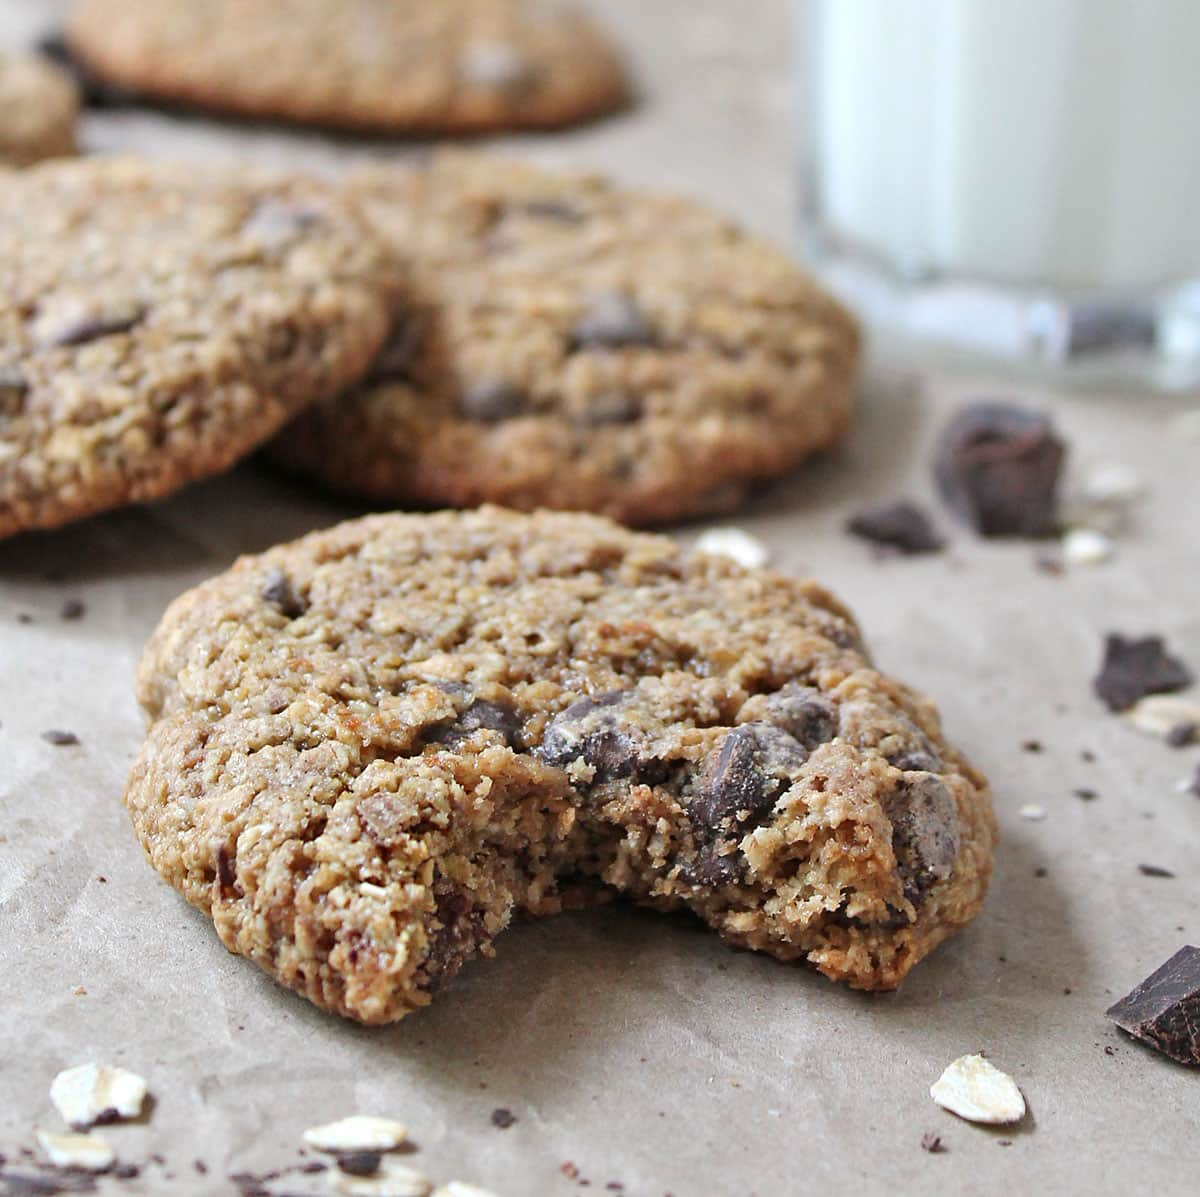 My Favorite Gluten Free Oatmeal Chocolate Chip Cookies